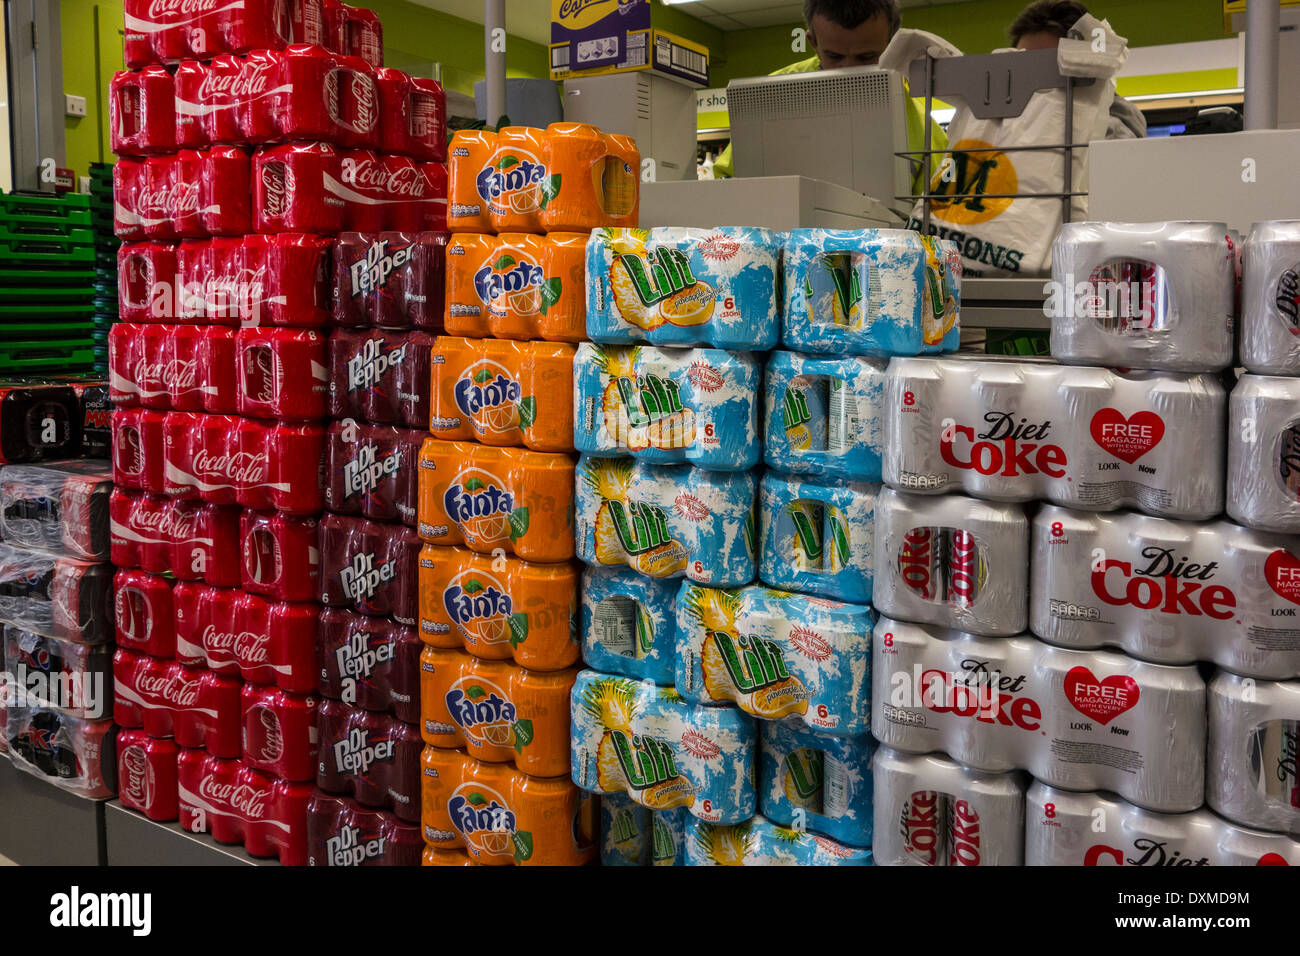 Cans of soft drinks piled high in a supermarket. - Stock Image